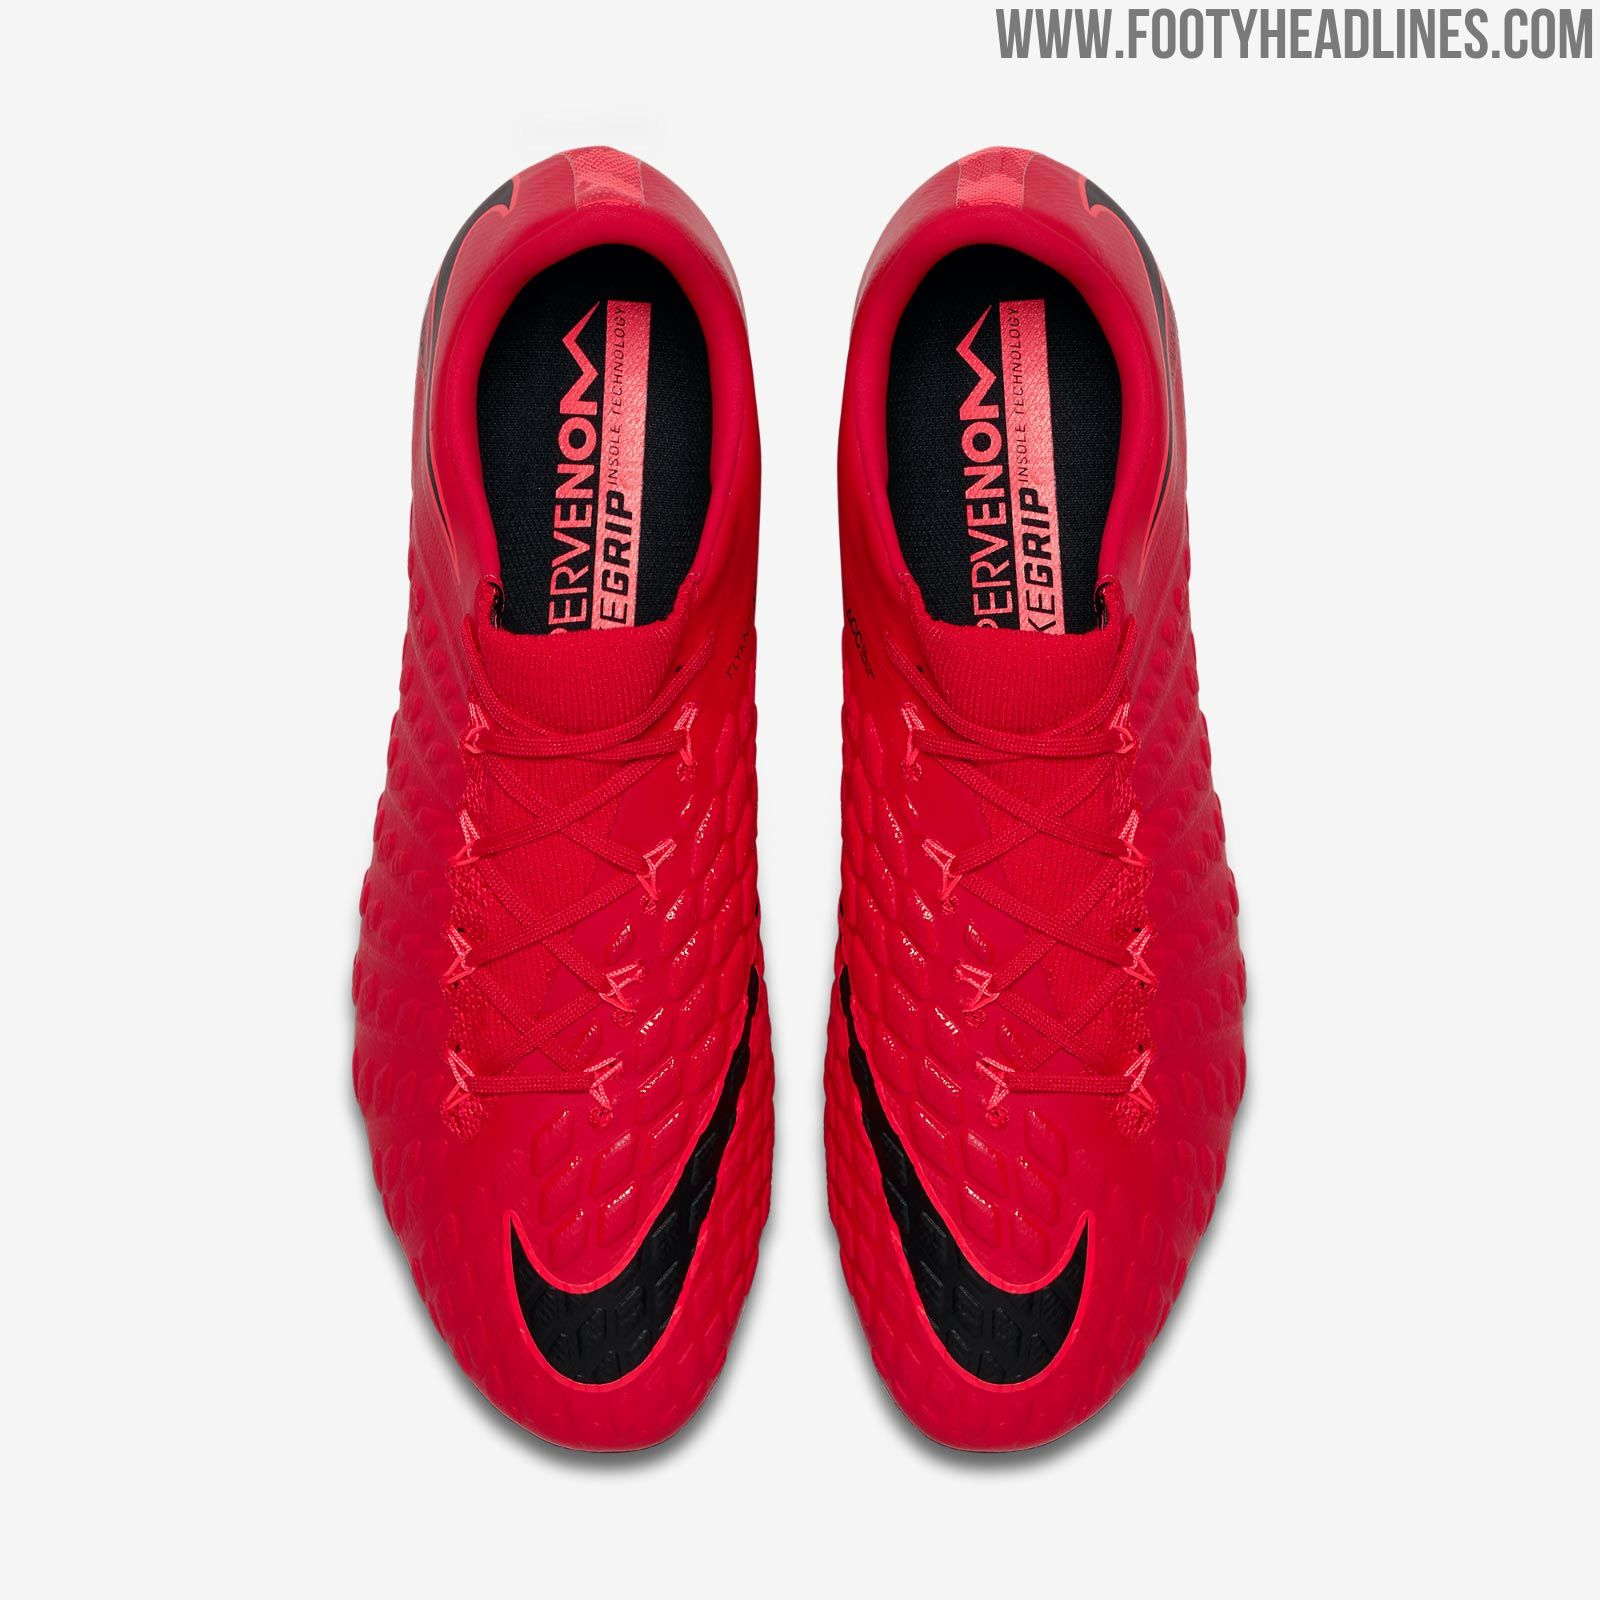 The Nike Hypervenom Phantom III football boots will receive a fiery color  update this November. d193635cd100d